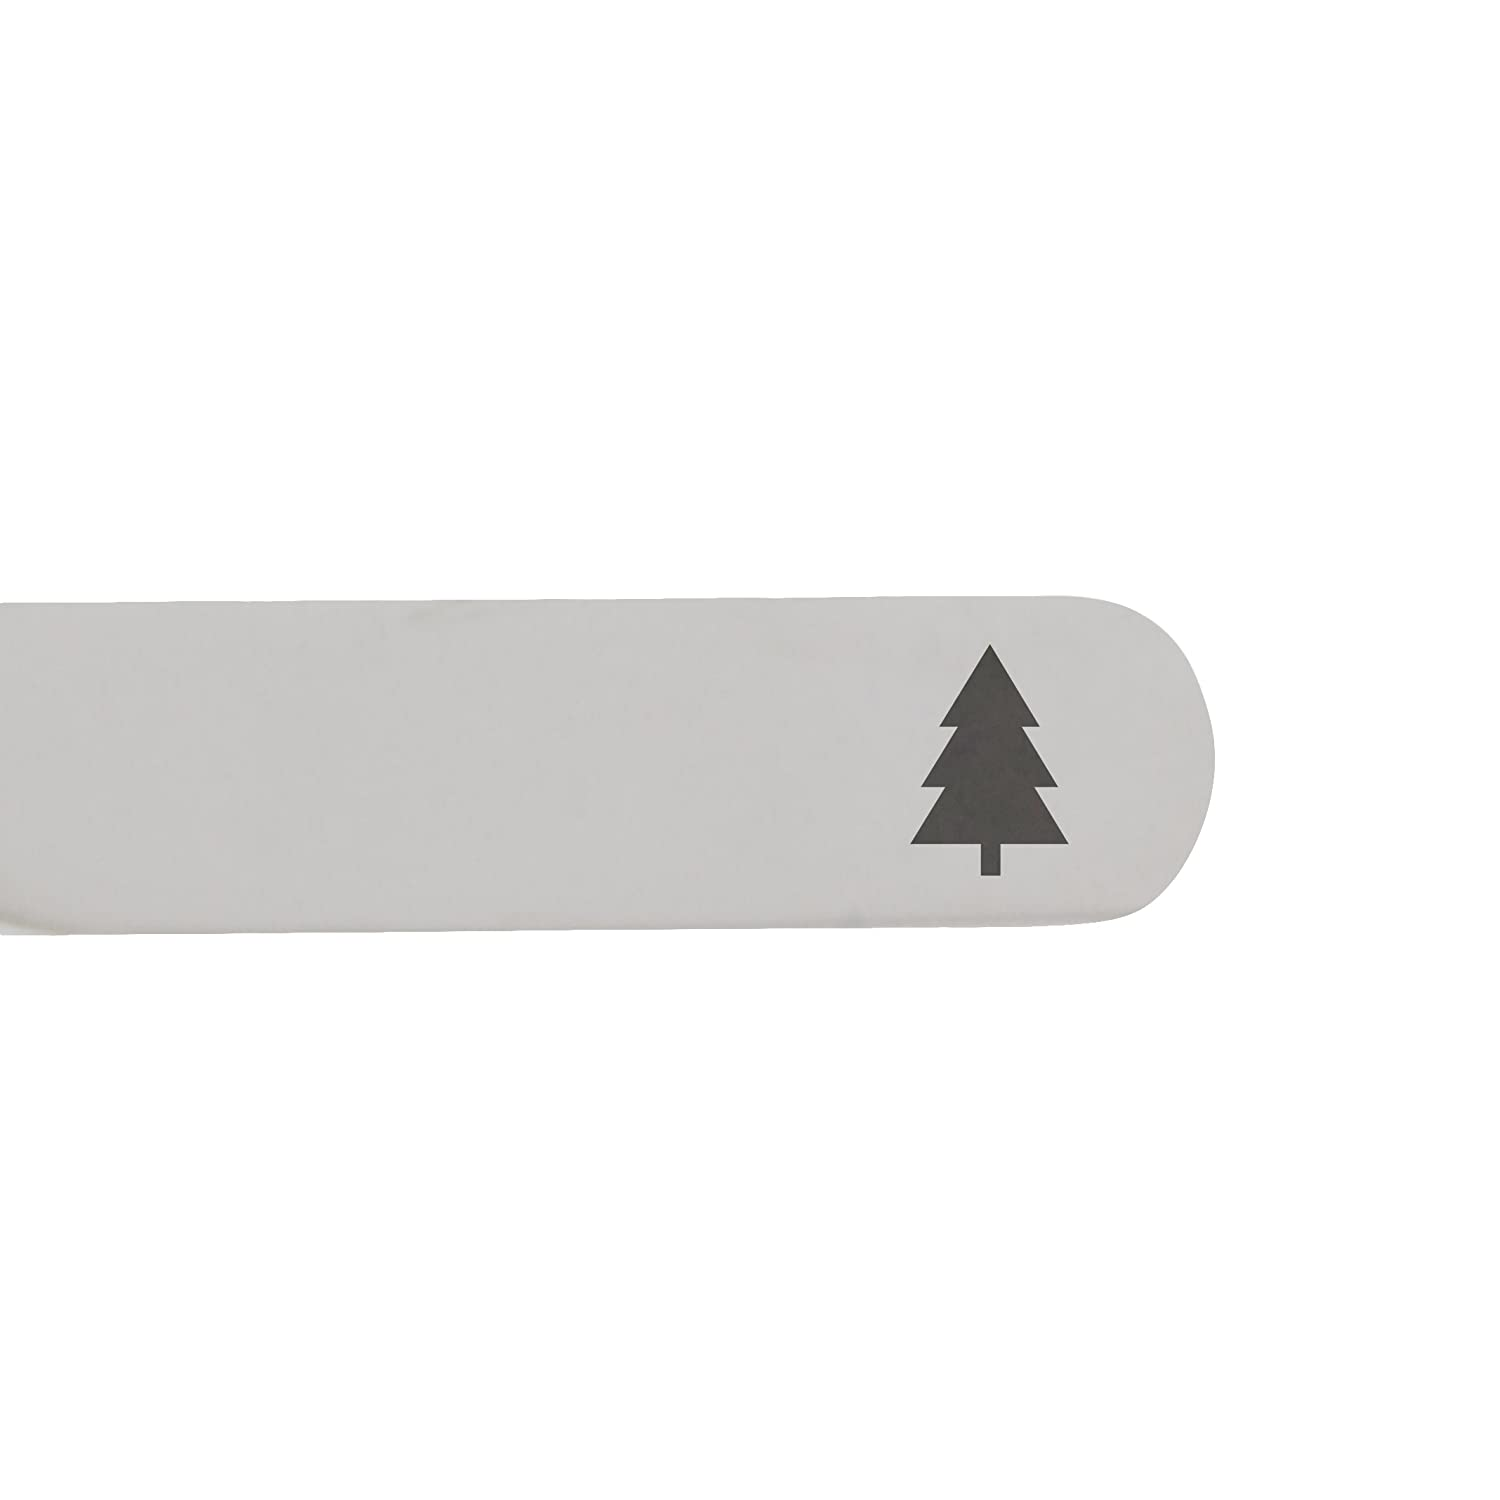 MODERN GOODS SHOP Stainless Steel Collar Stays With Laser Engraved Confier Design Made In USA 2.5 Inch Metal Collar Stiffeners